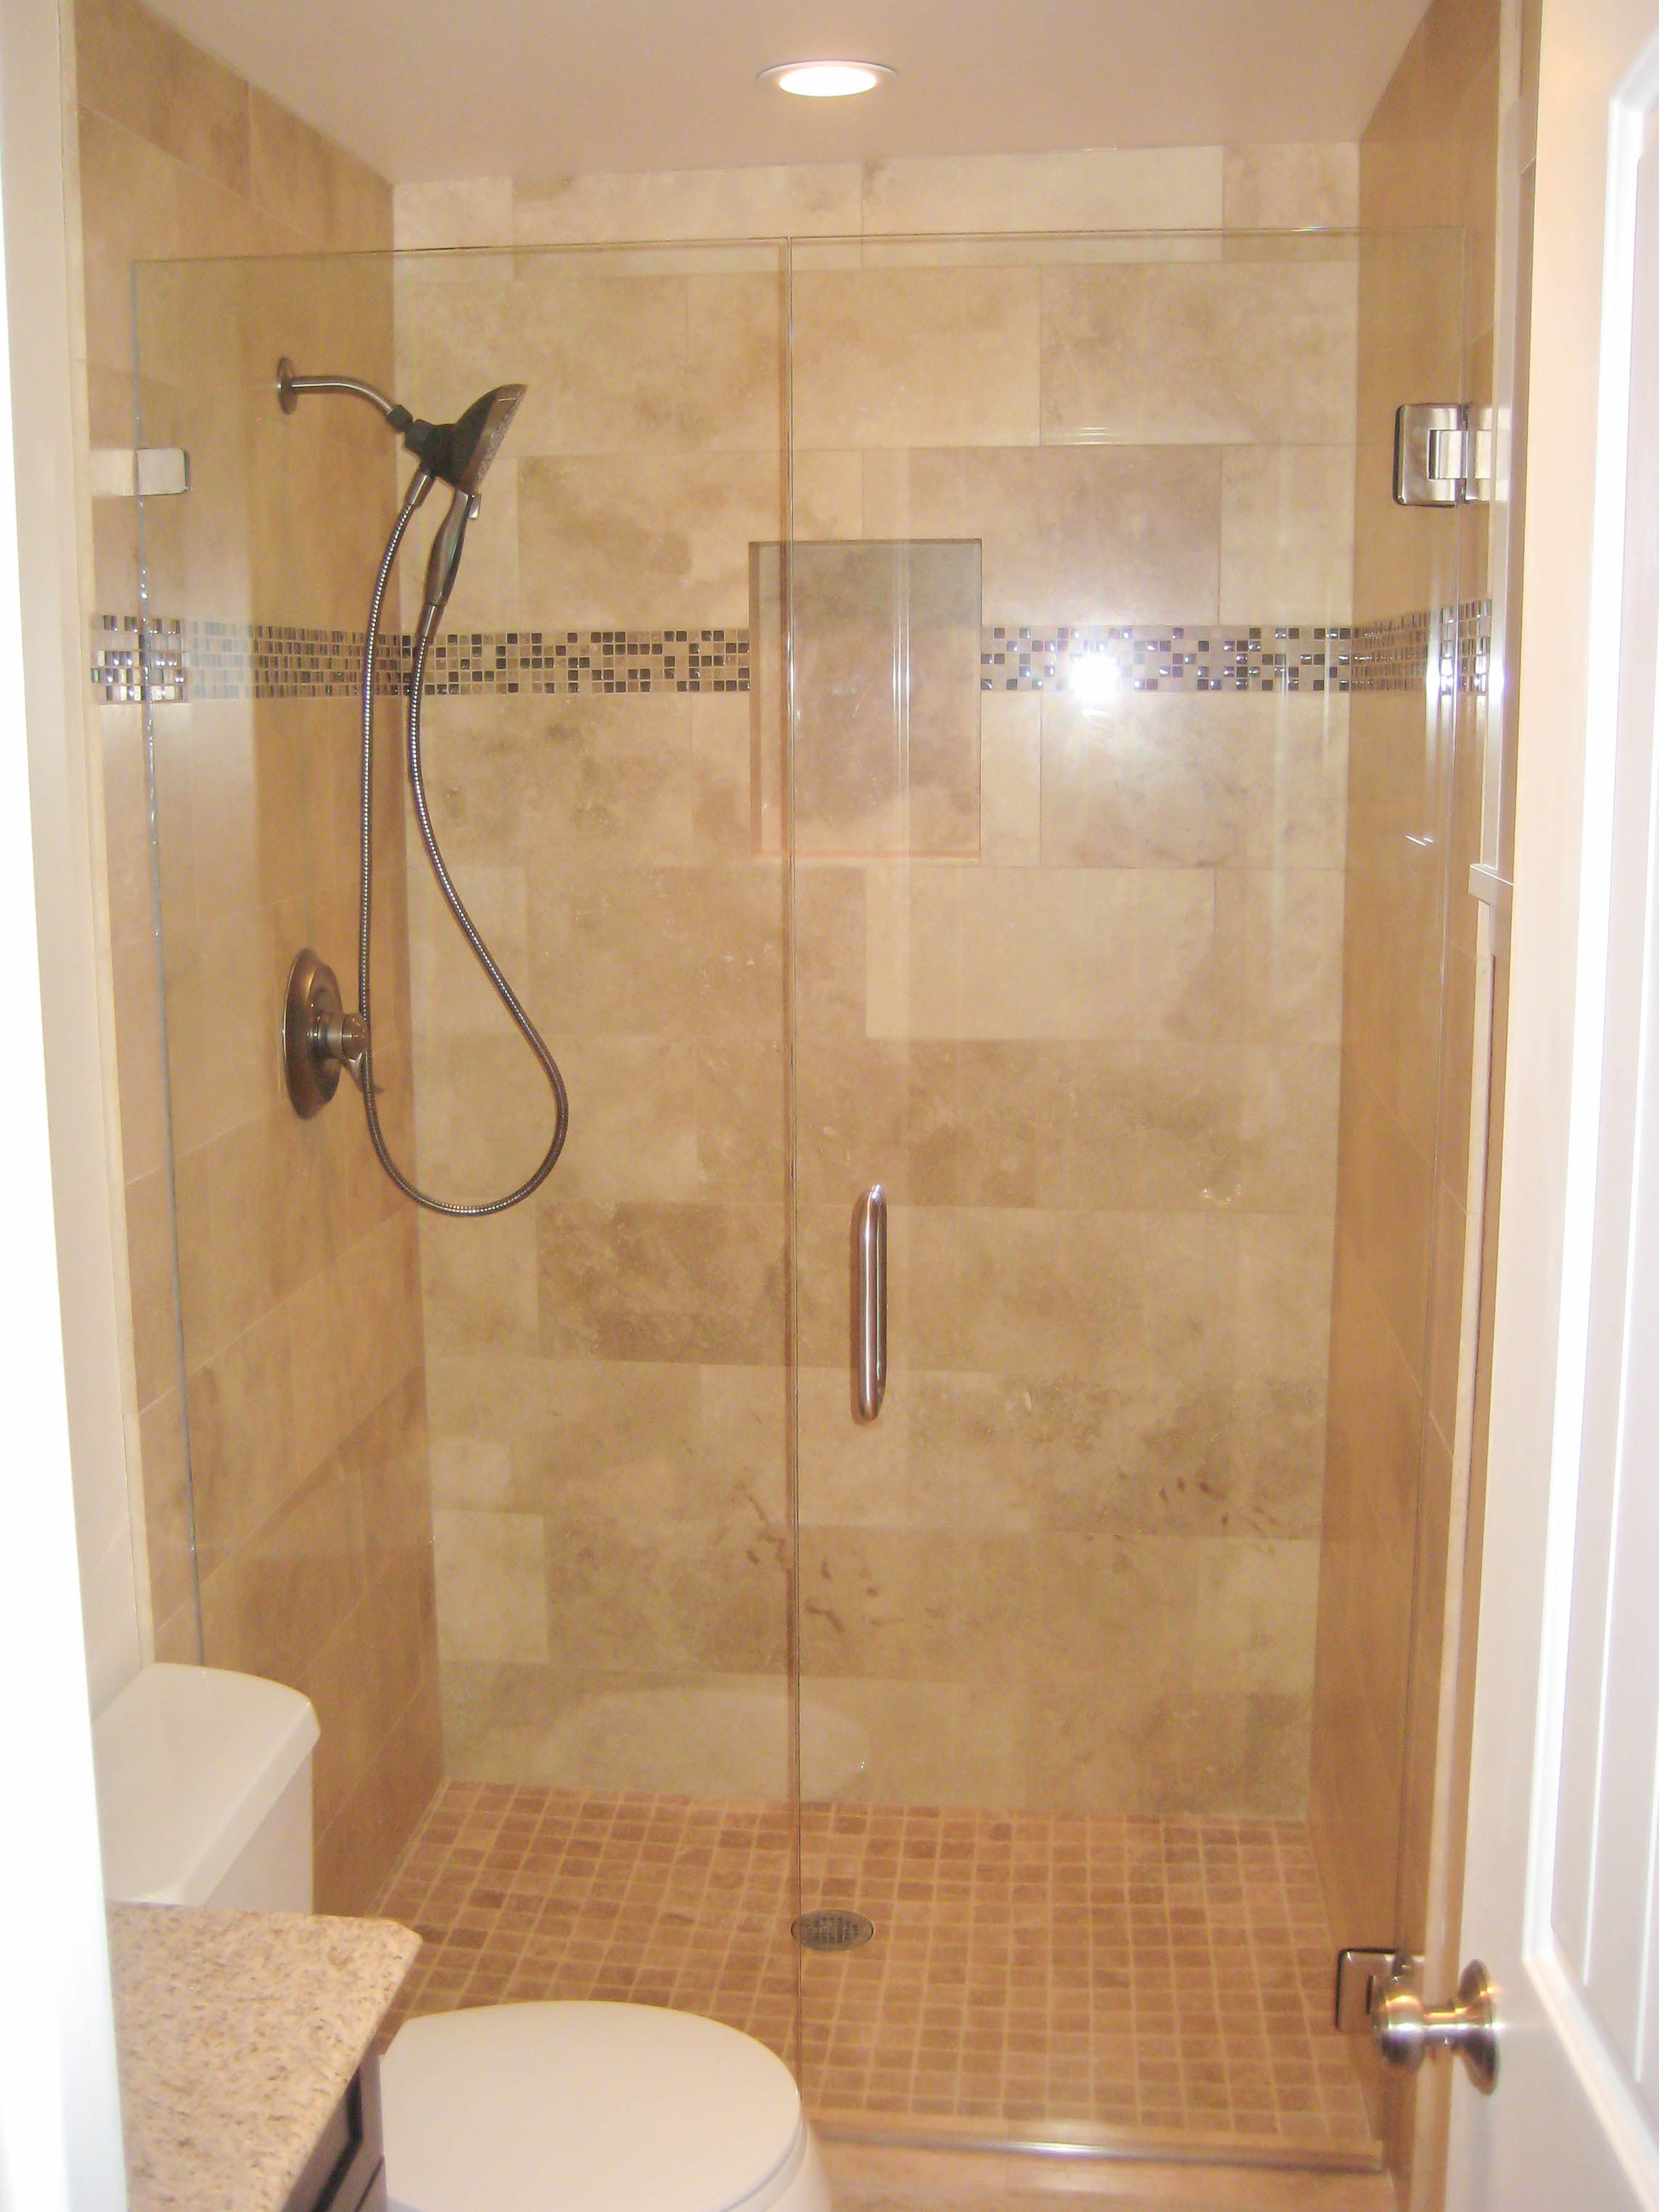 Bathroom showers photos seattle tile contractor irc tile services Tile a shower